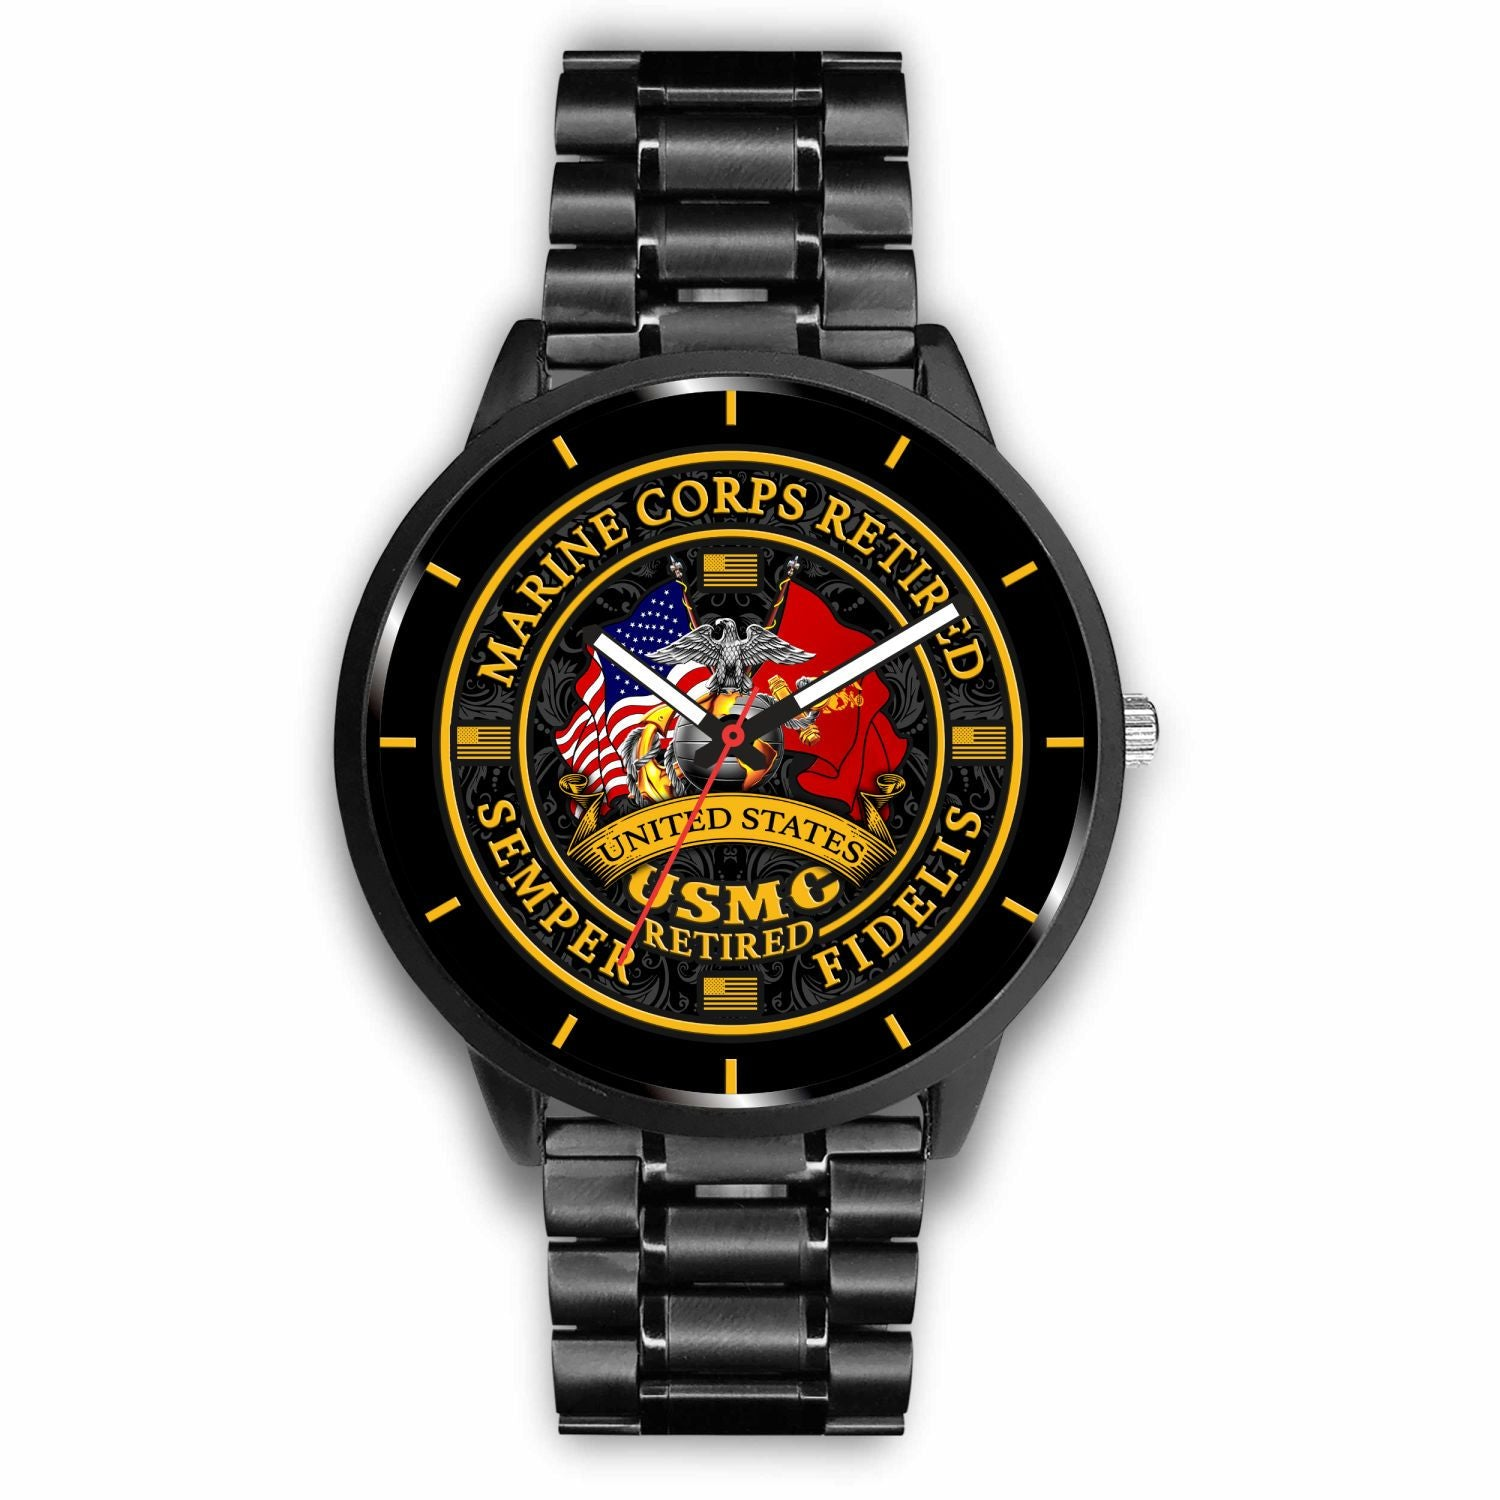 Buy UNITED STATES RETIRED SEMPER FIDELIS MARINE RETIRED WATCH - Familyloves hoodies t-shirt jacket mug cheapest free shipping 50% off